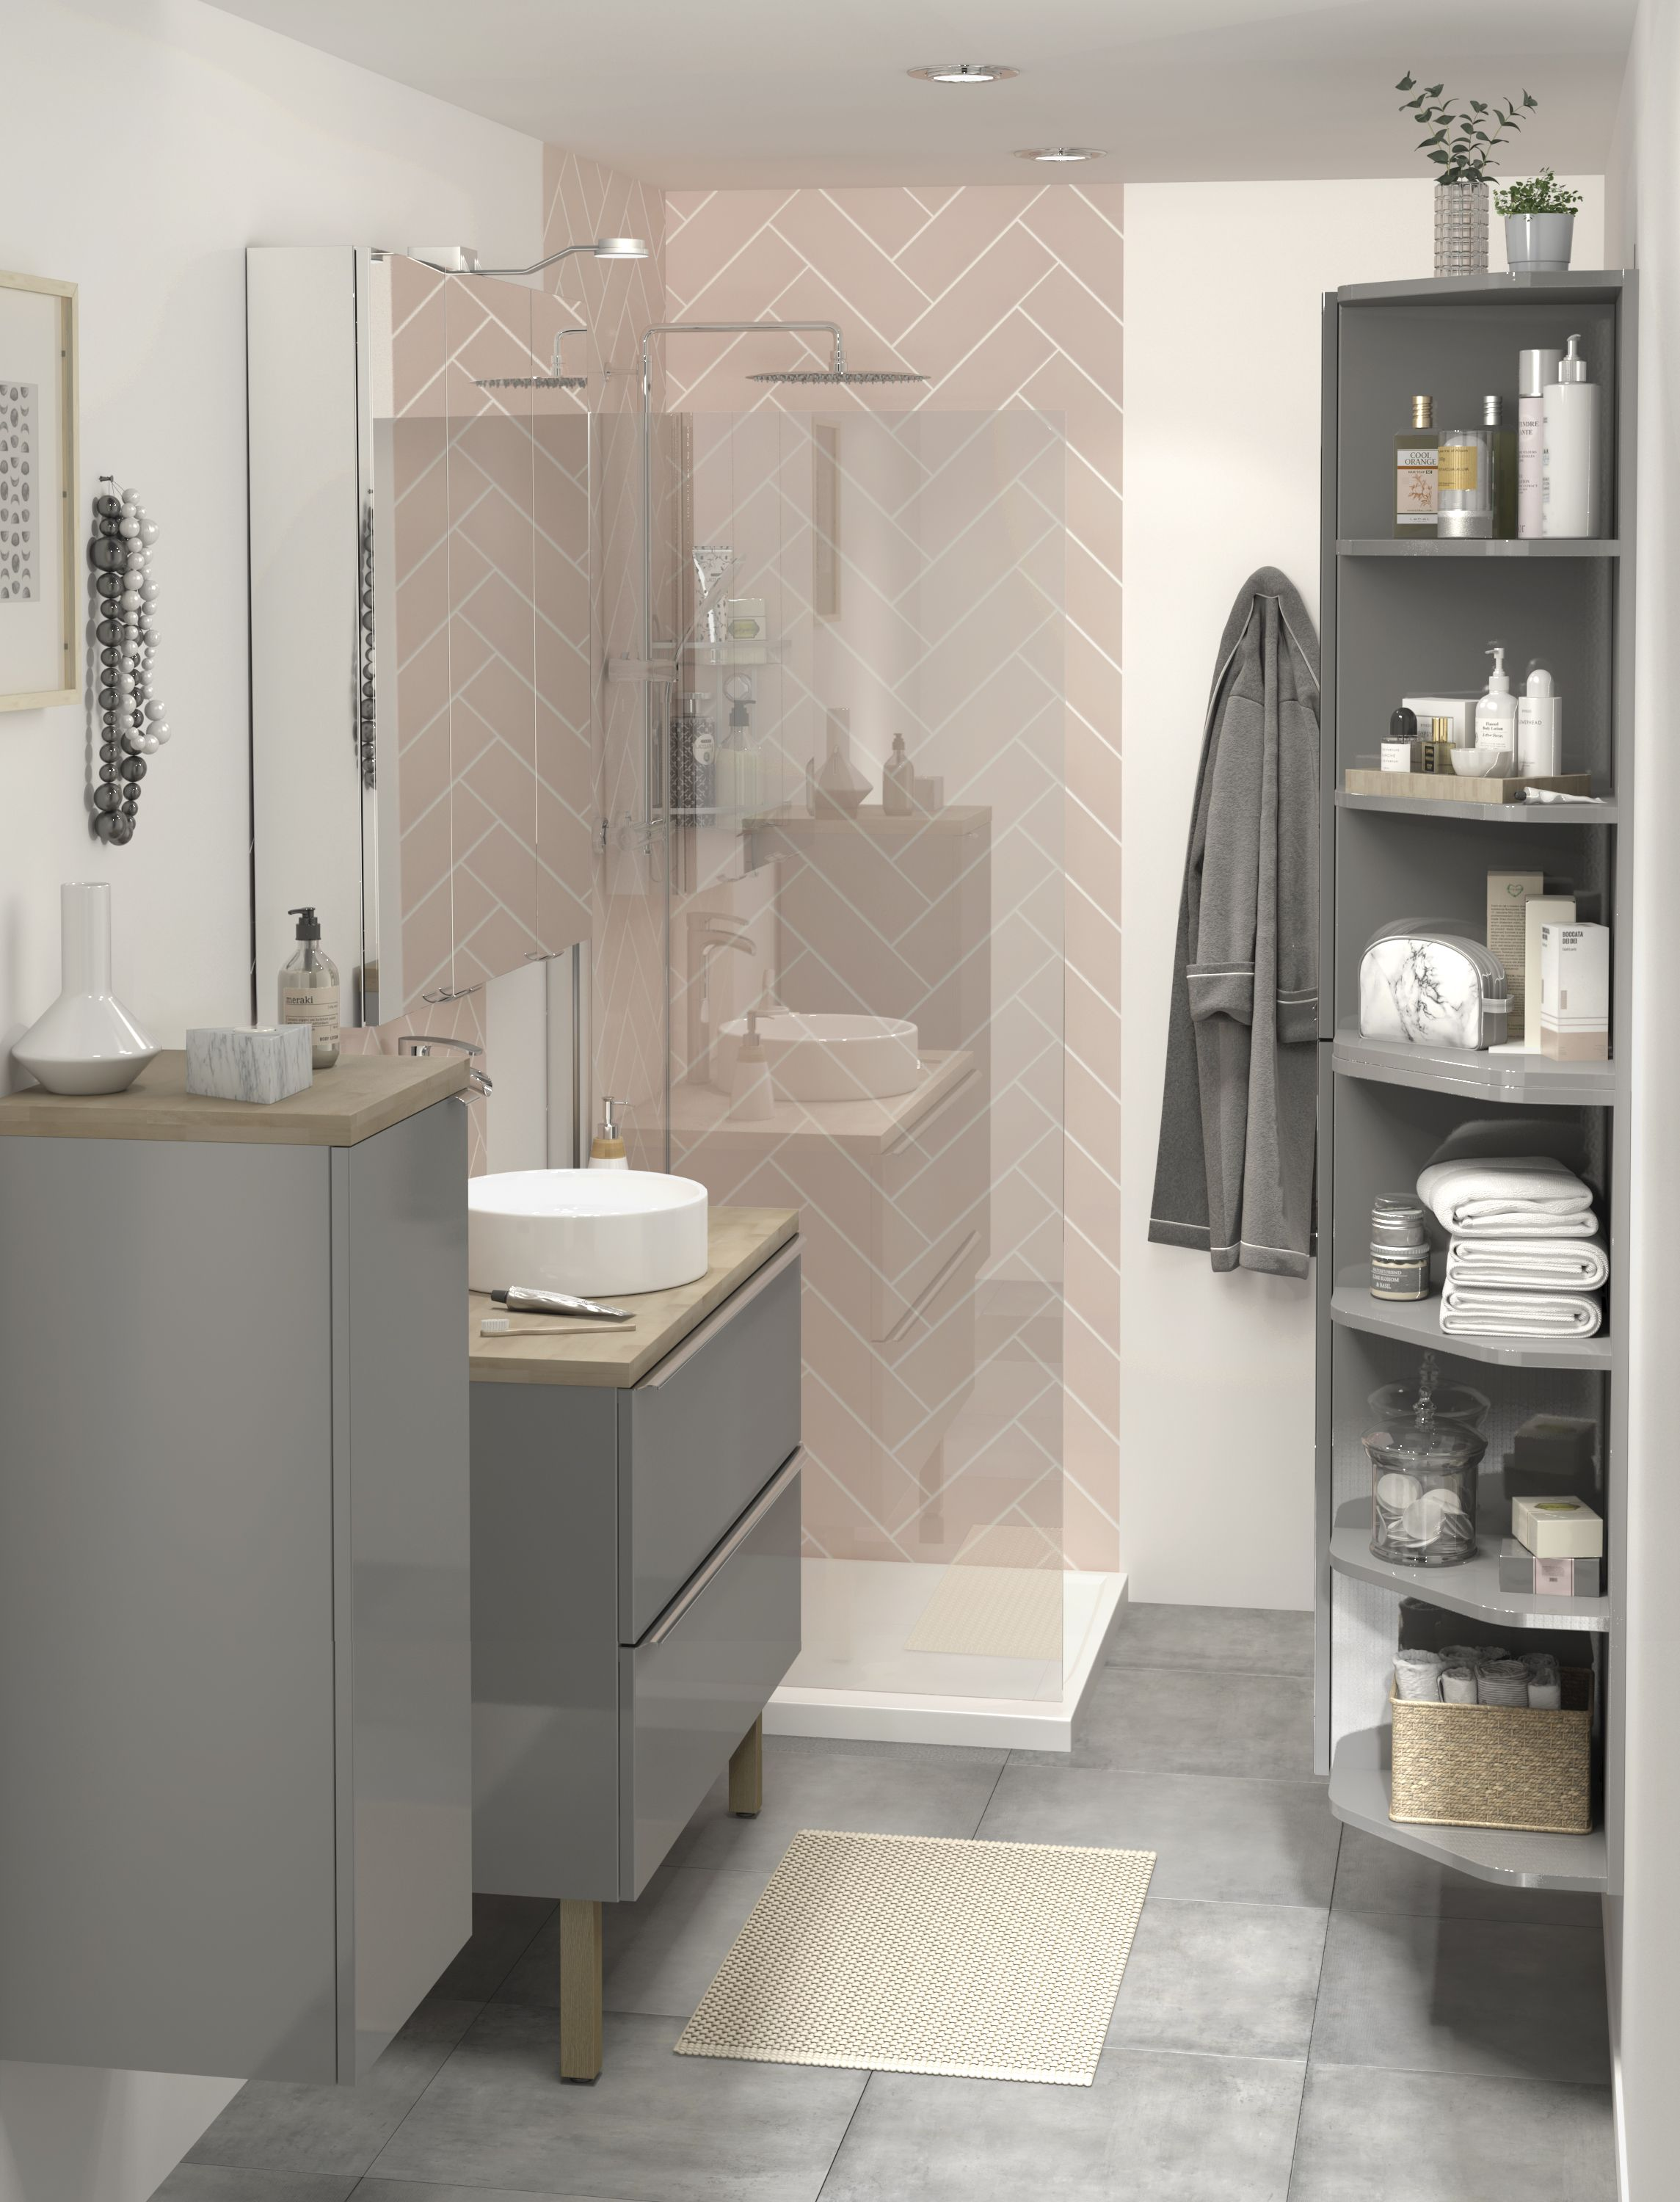 The Imandra bathroom collection from B&Q not only comes in ...